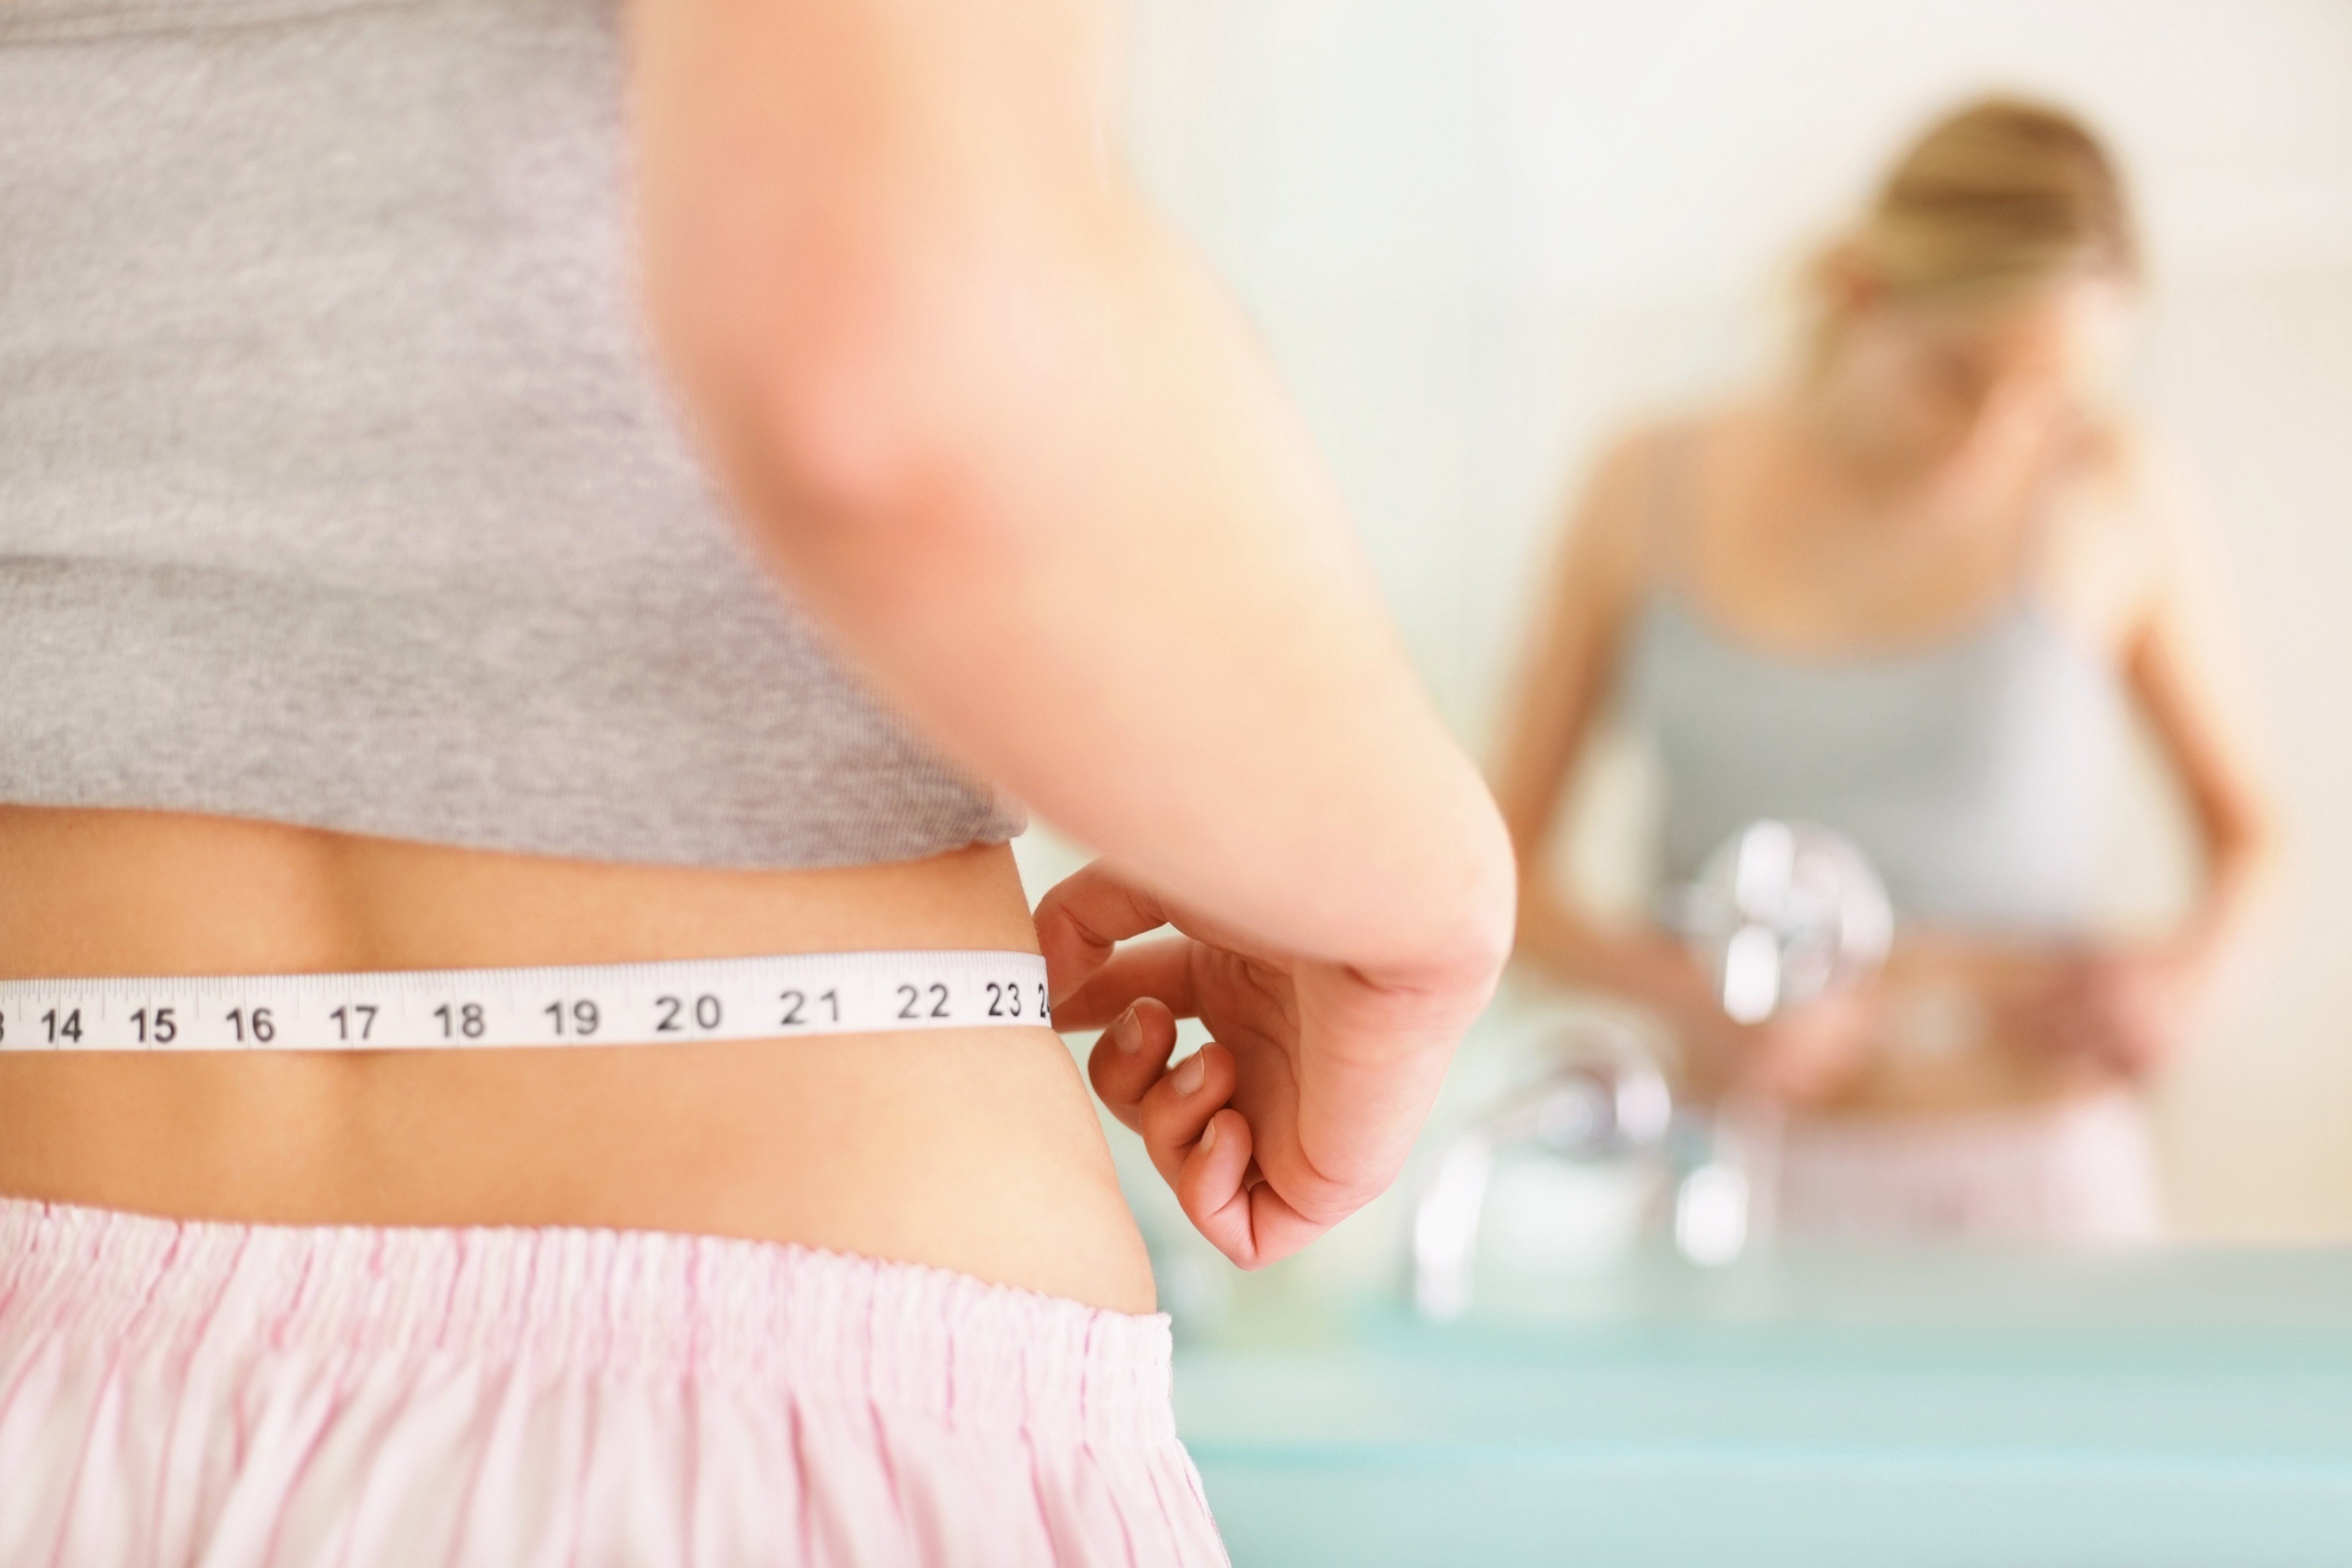 How to Reduce Waist Circumference